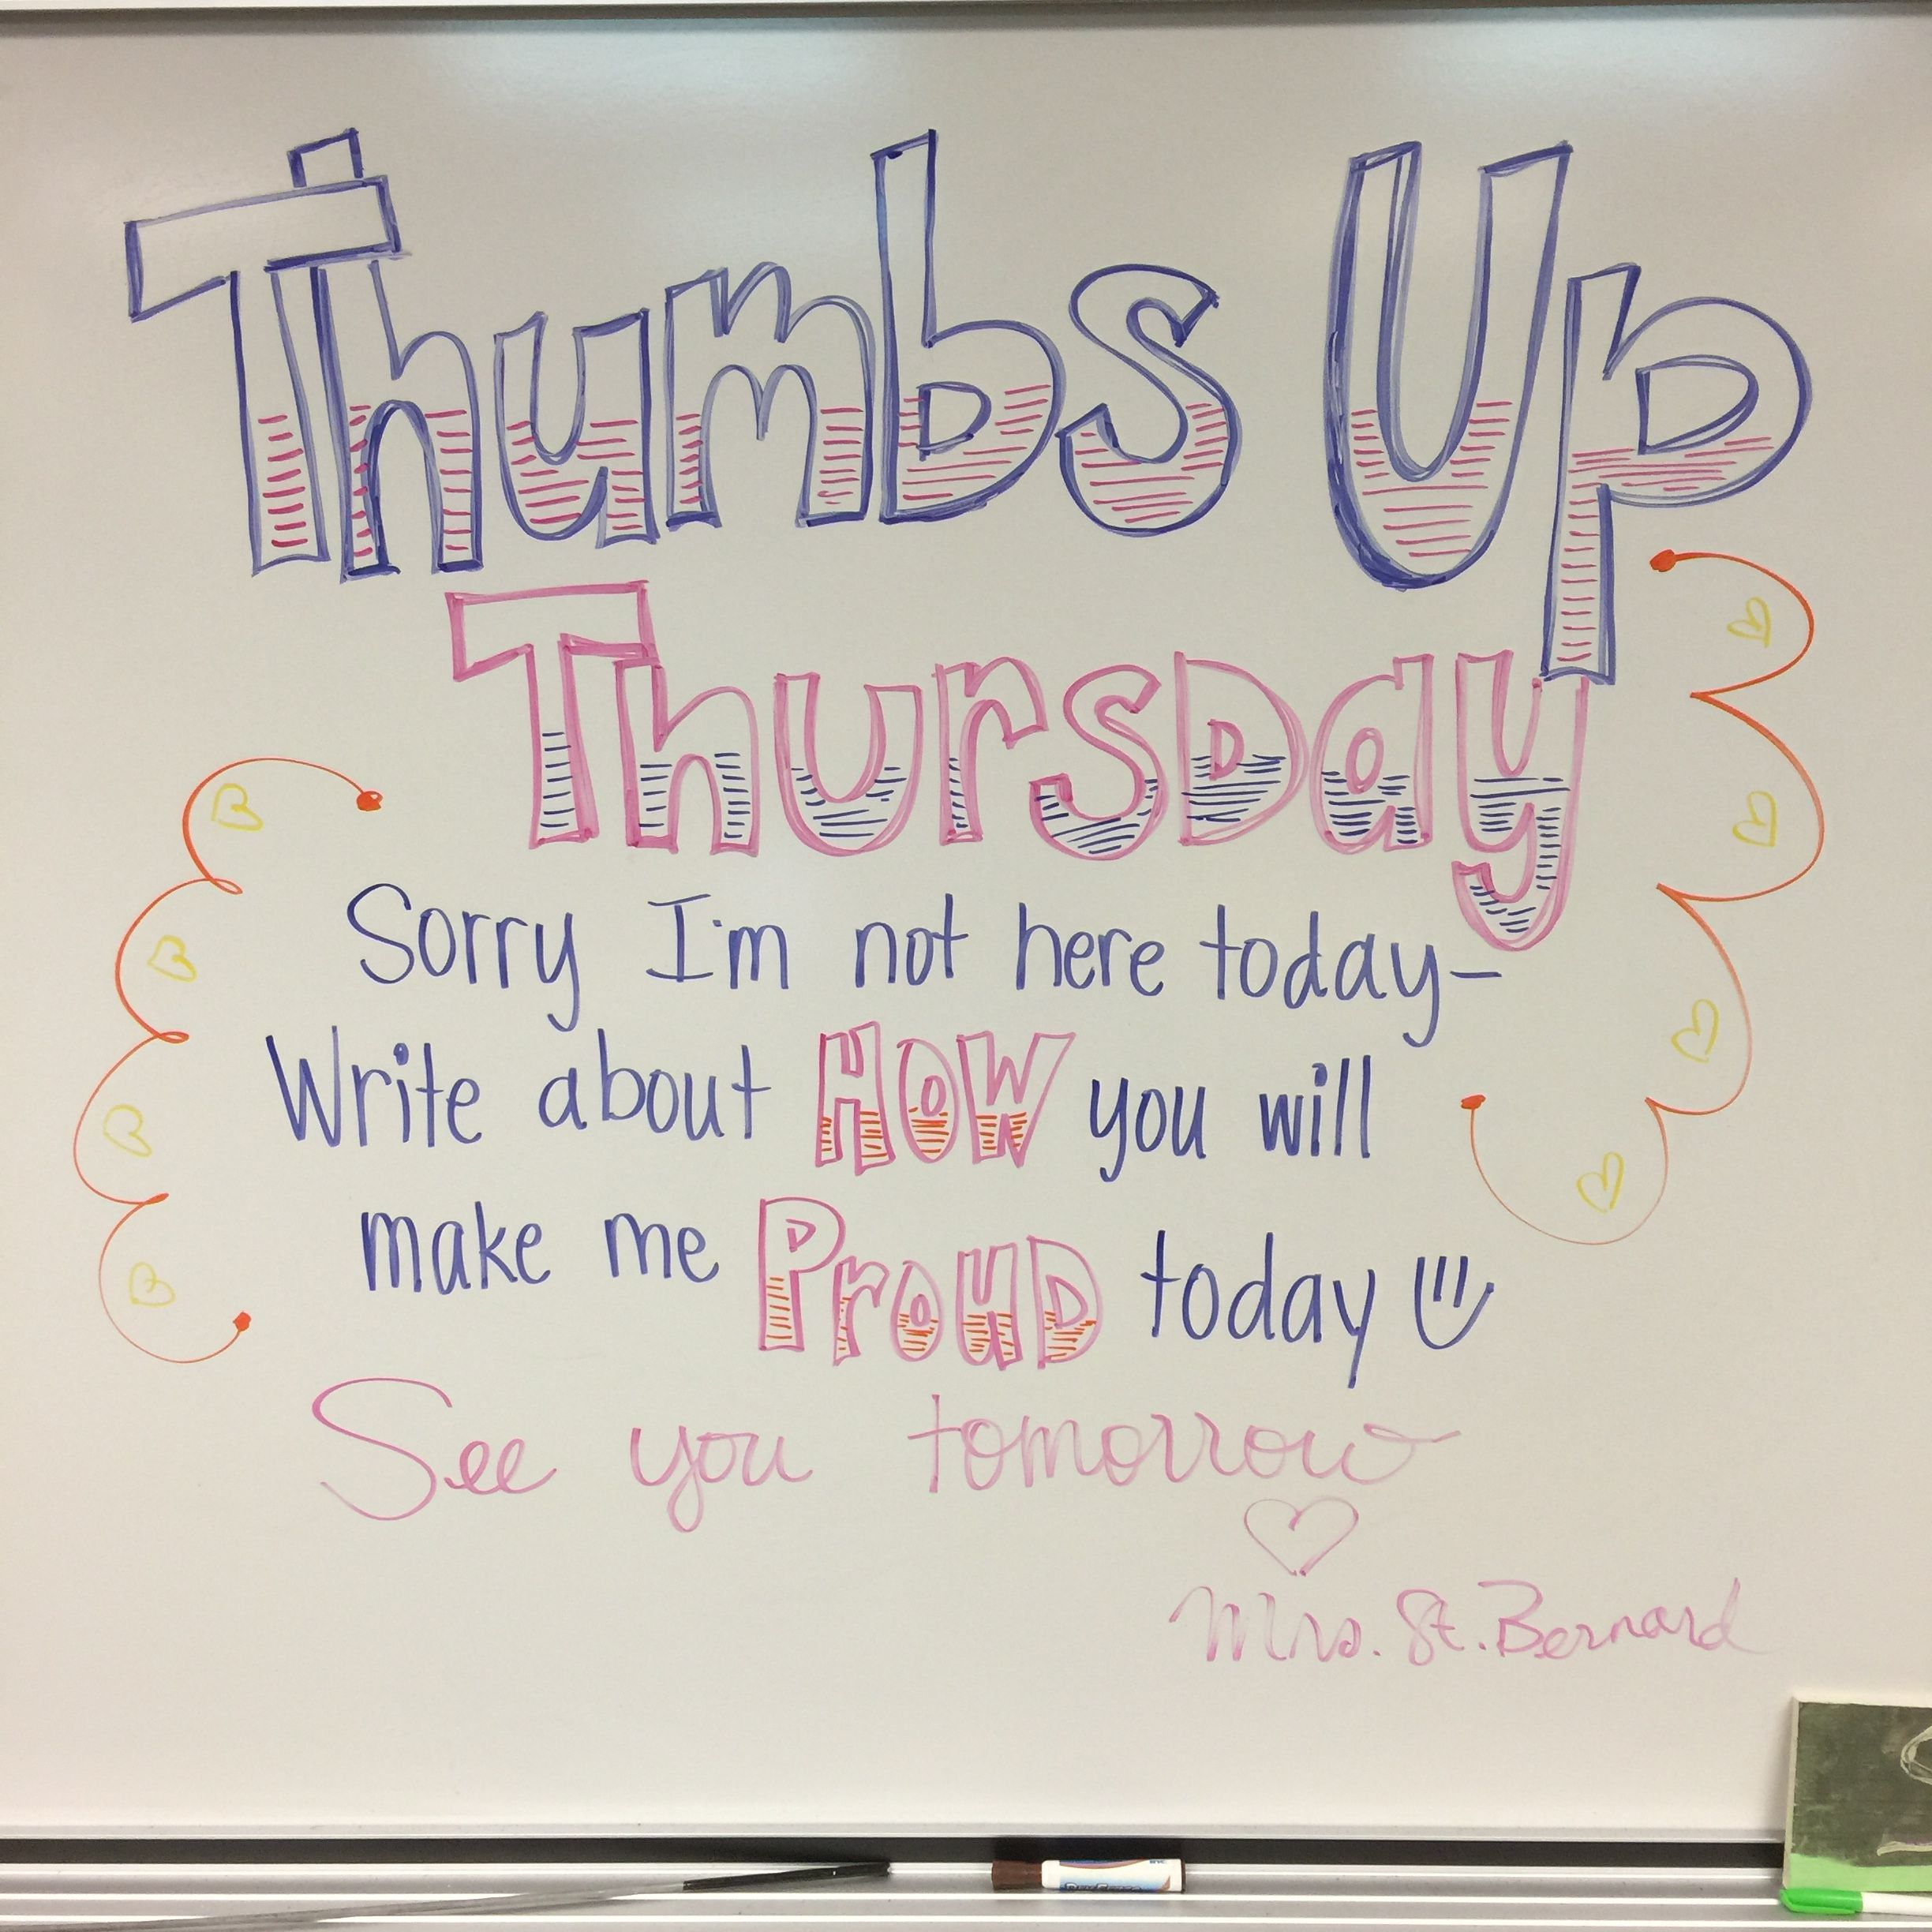 Thumbs Up Thursday